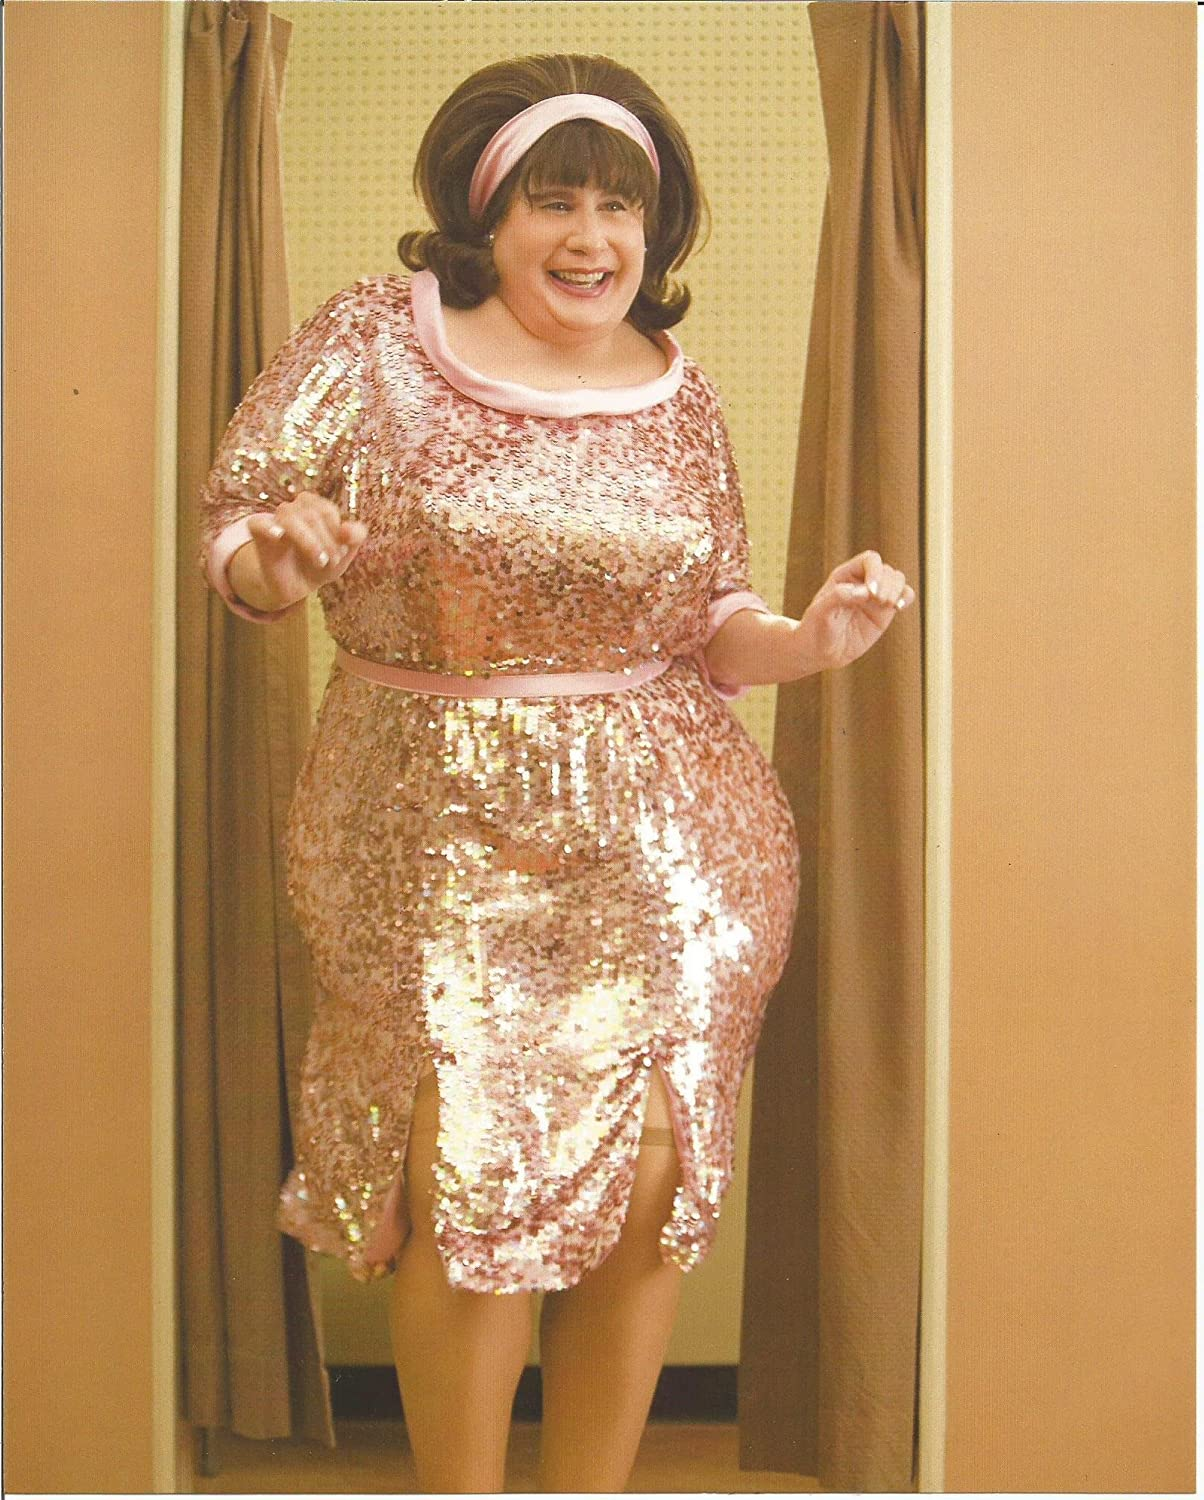 John Travolta In Hairspray As Edna Turnblad Dancing 8 X 10 Photo At Amazon S Entertainment Collectibles Store